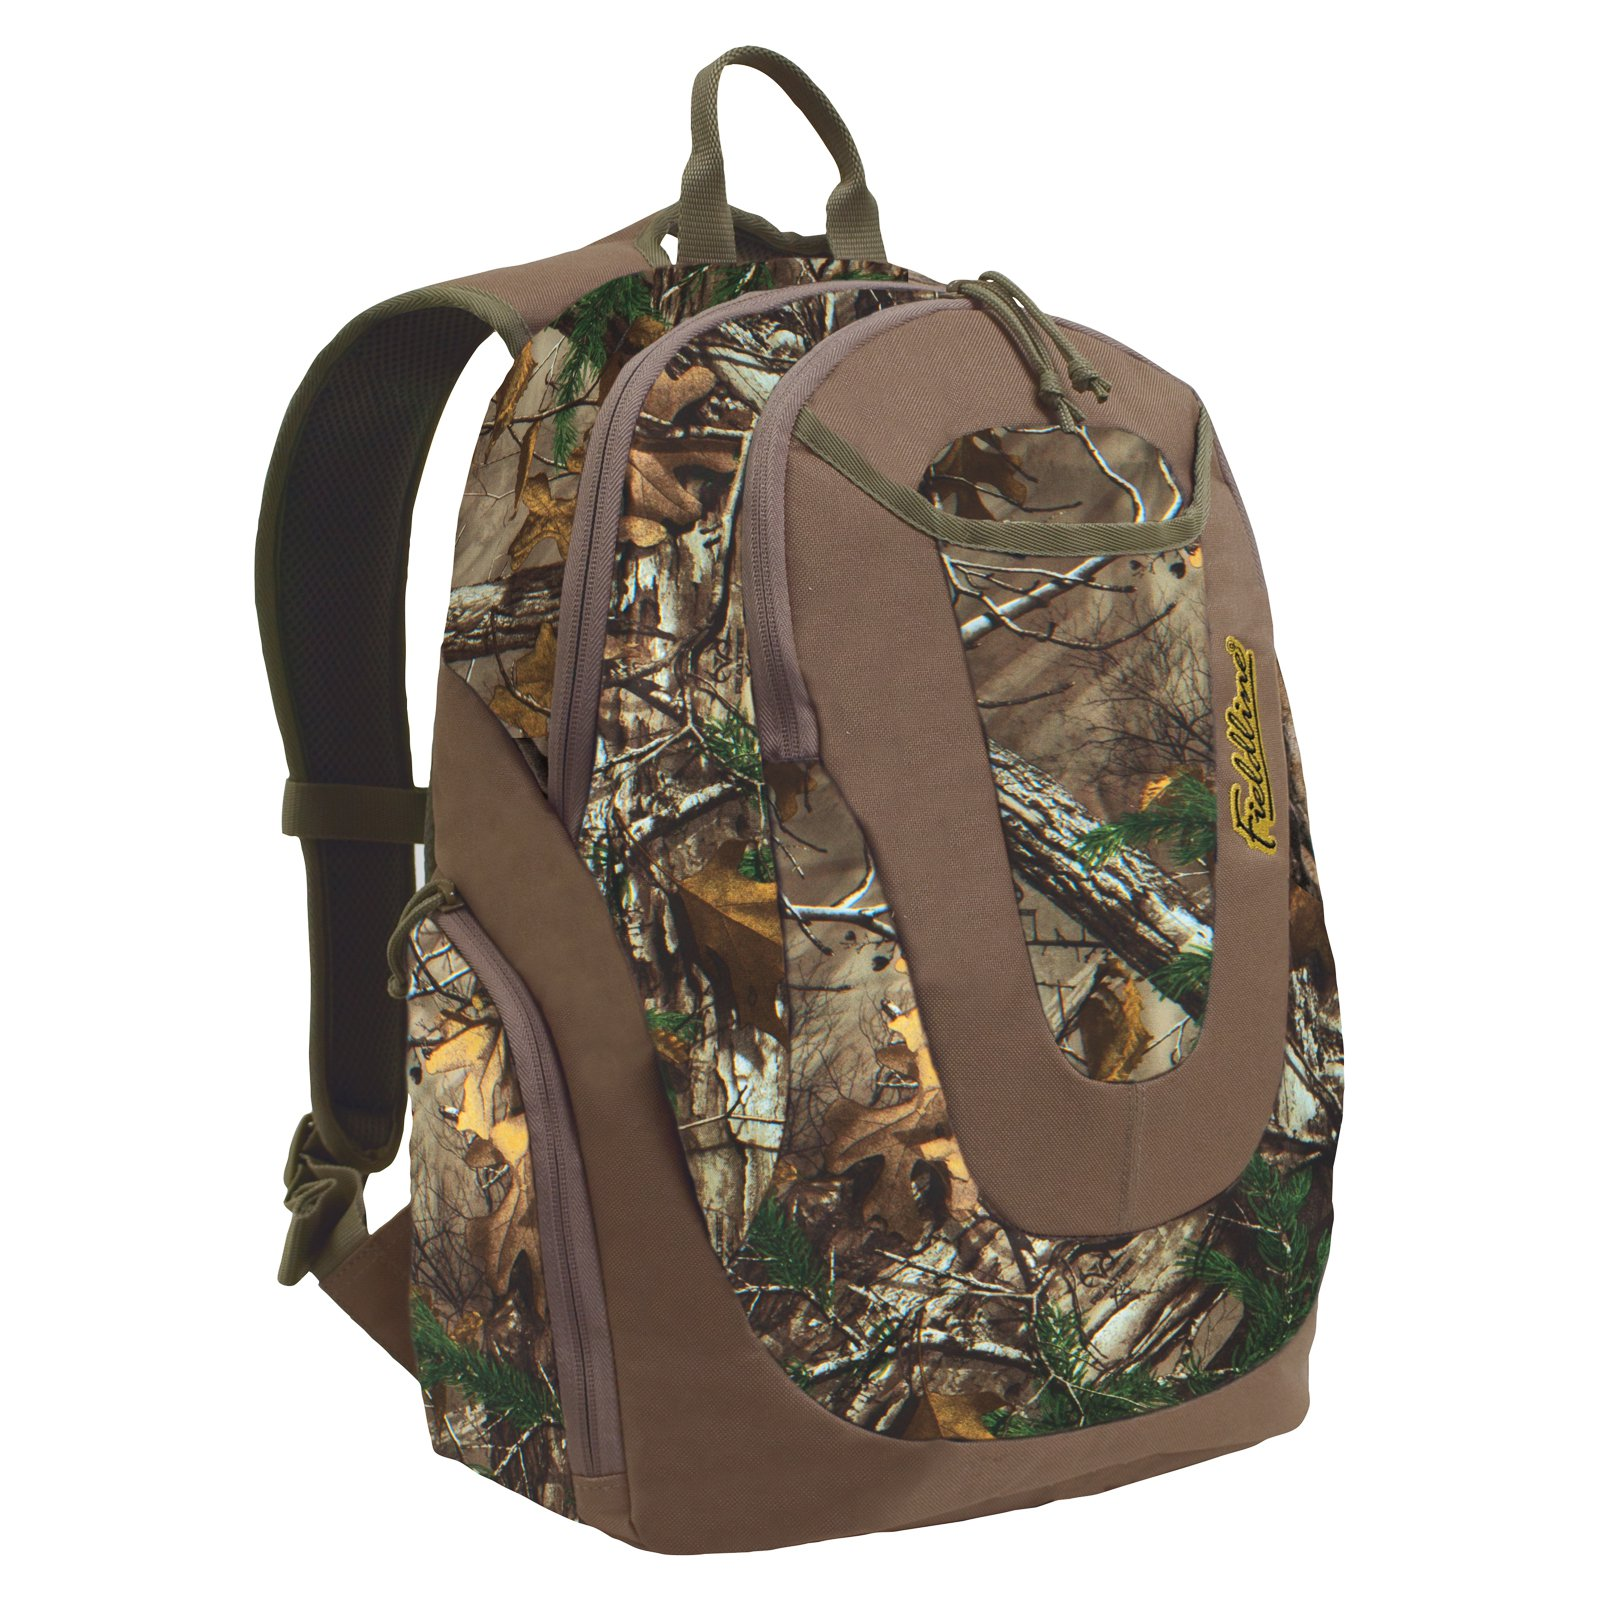 Fieldline Montana Backpack, Realtree Xtra